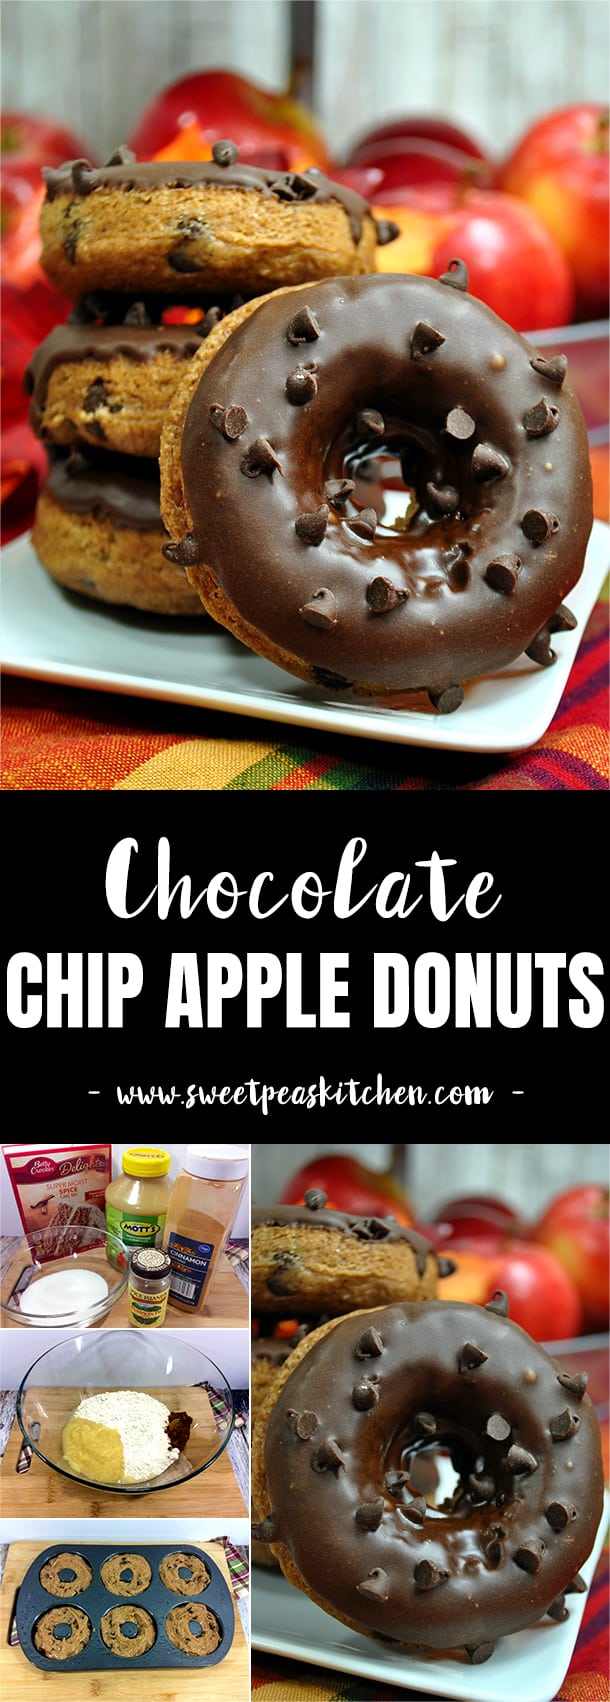 Chocolate Chip Apple Donuts Recipe